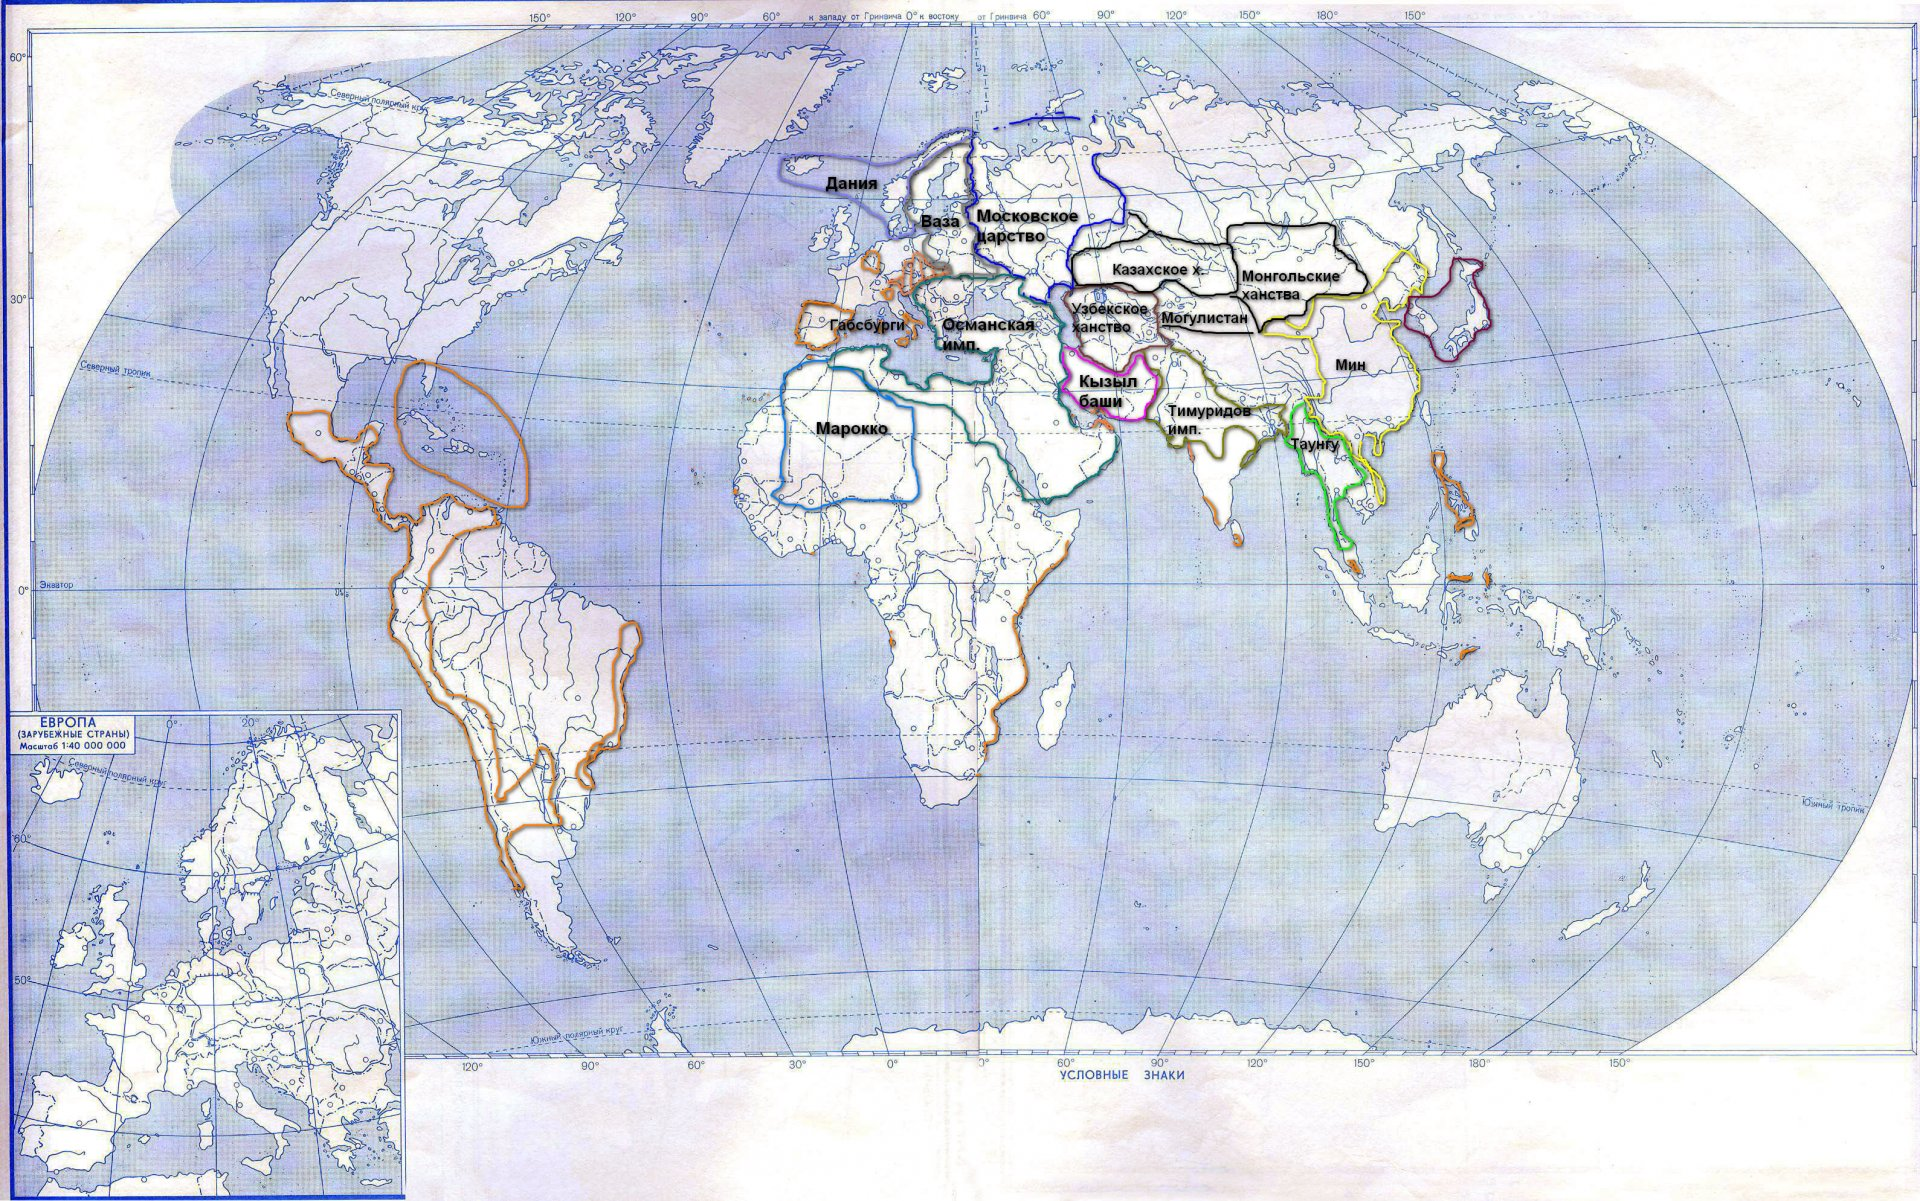 large_detailed_contour_map_of_the_World1.jpg